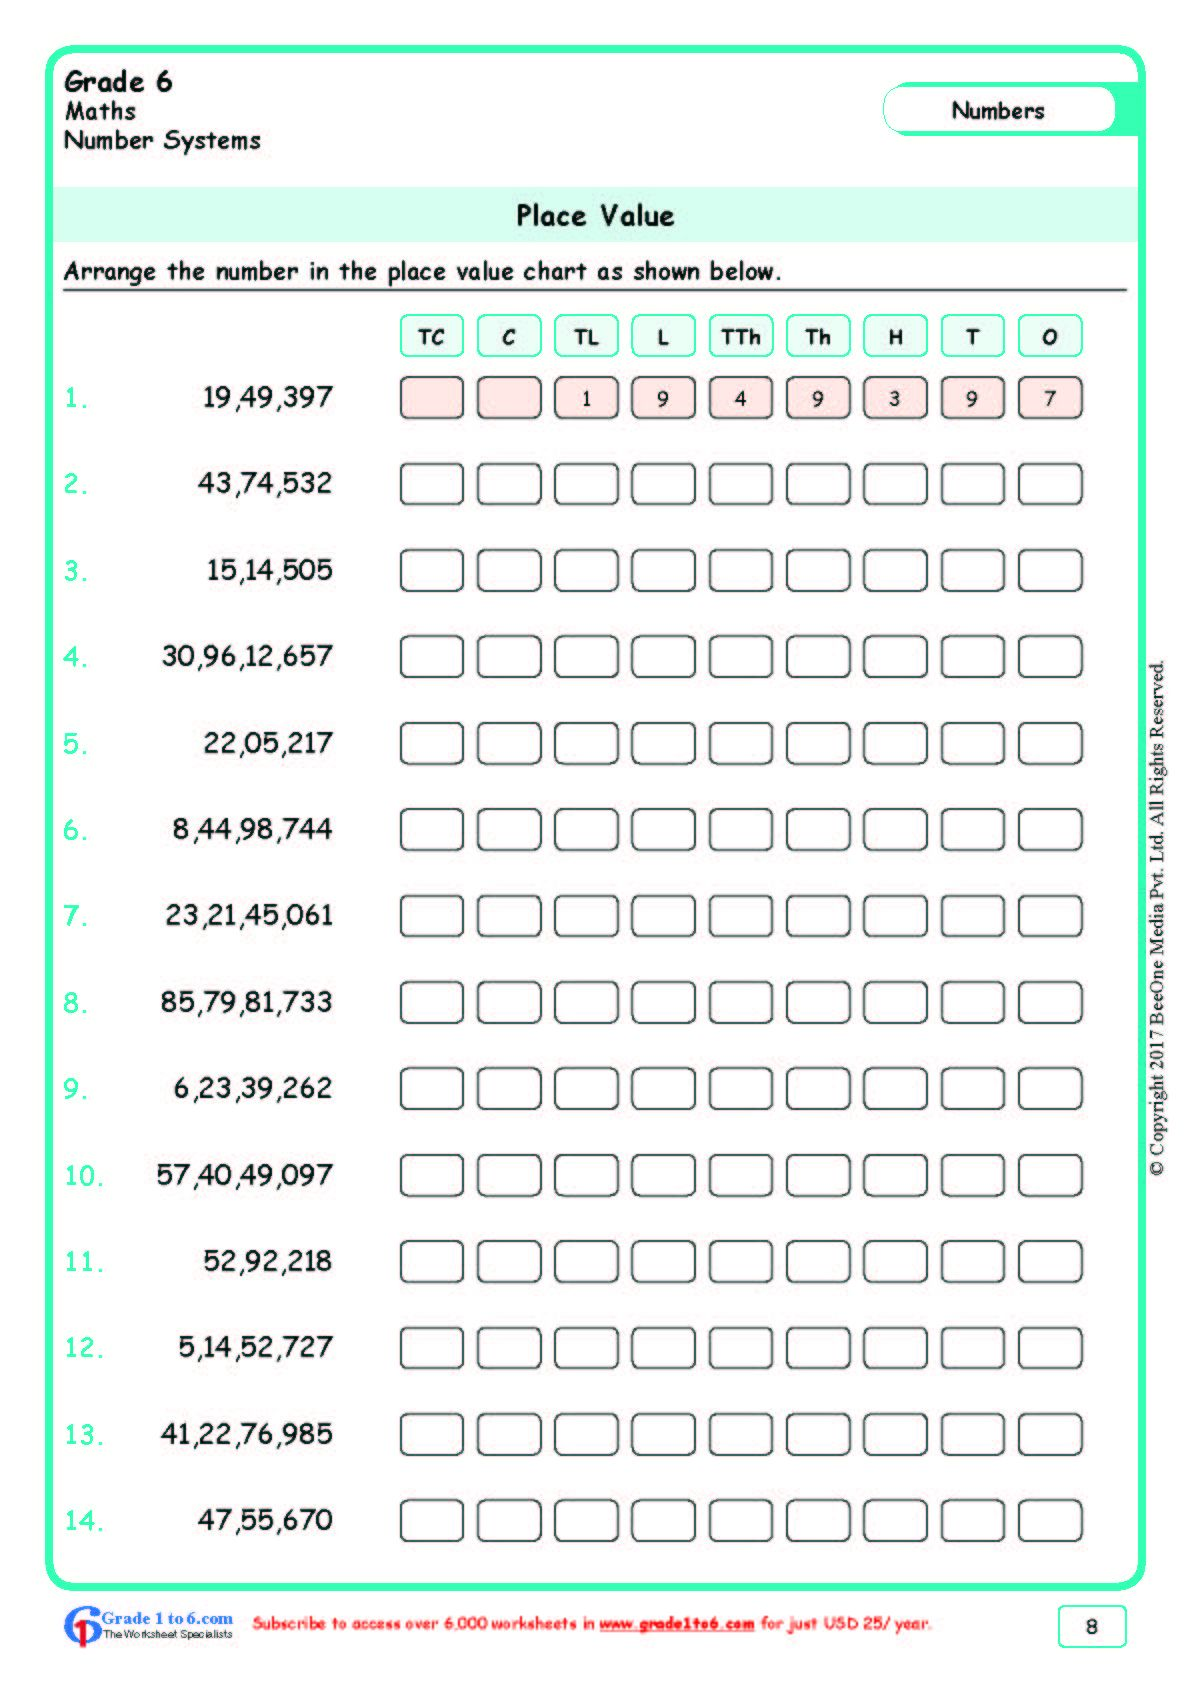 Worksheet Grade 6 Math Place Value In